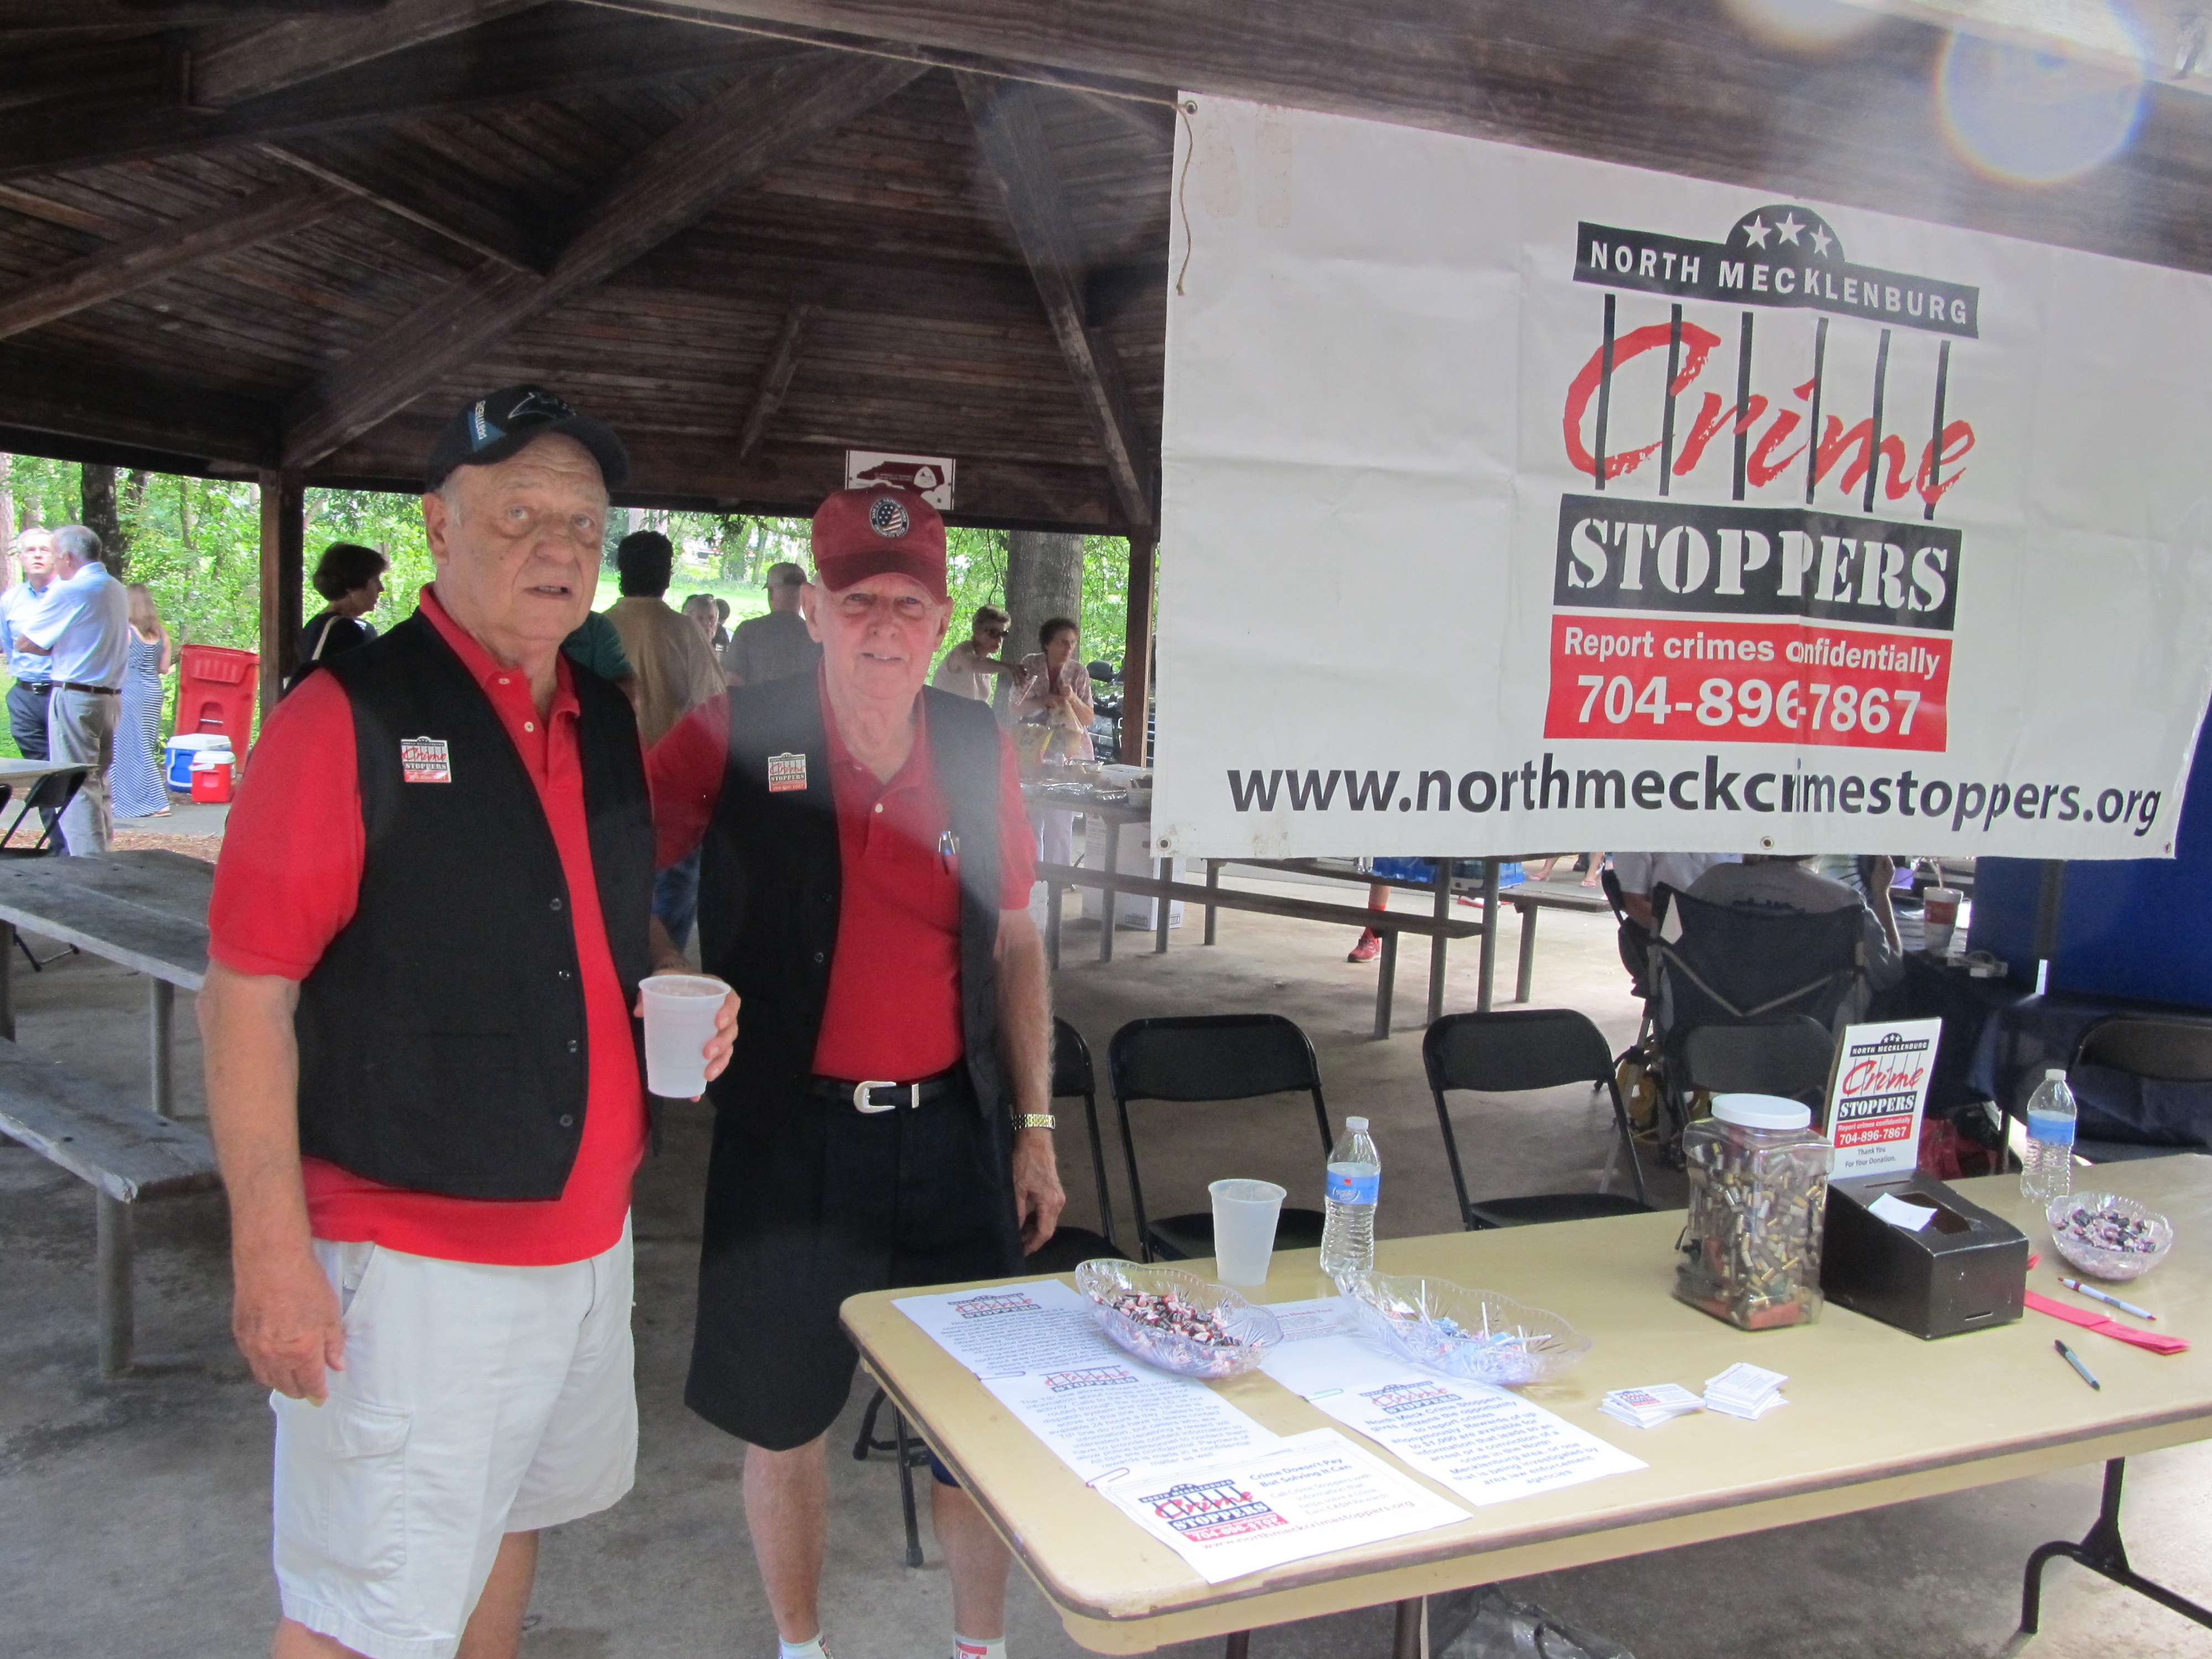 2014-08-05 NNO North Meck Crime Stoppers